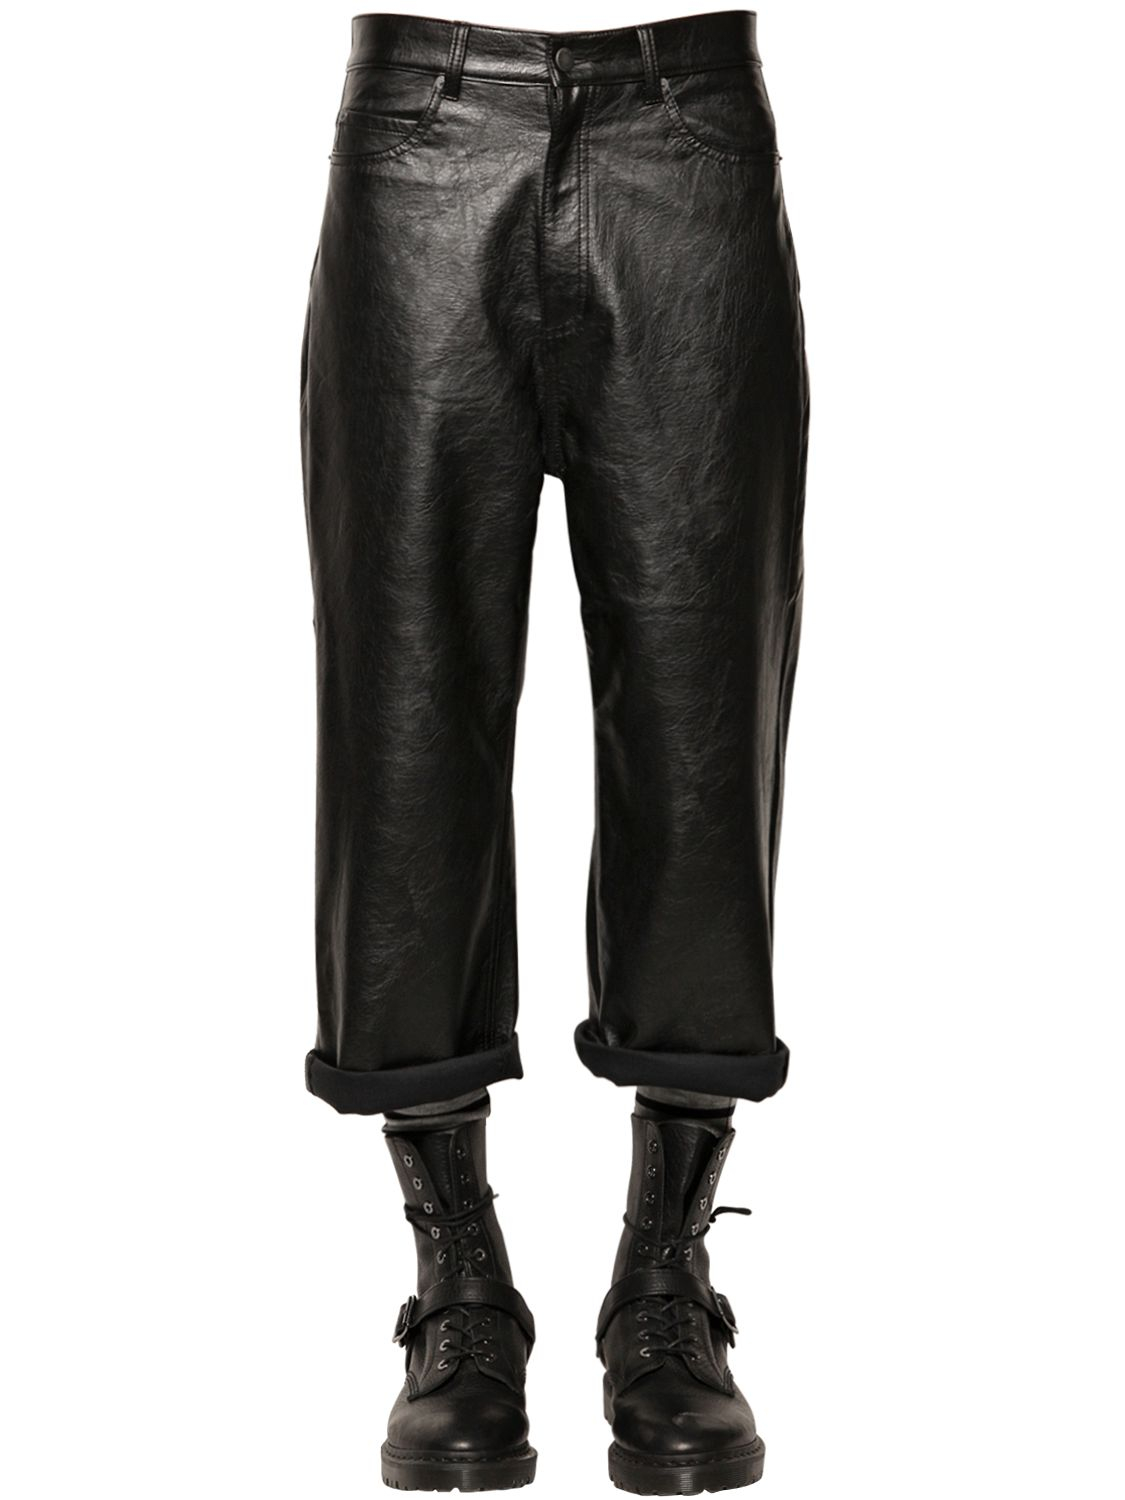 You will find a high quality cheap leather pants at an affordable price from brands like BONJEAN. We also know that personalization is in the details, so we offer many different cheap leather pants Color like Black, Red, White, Blue, Pink, Beige, Brown, Gold, Gray, Green, and others.